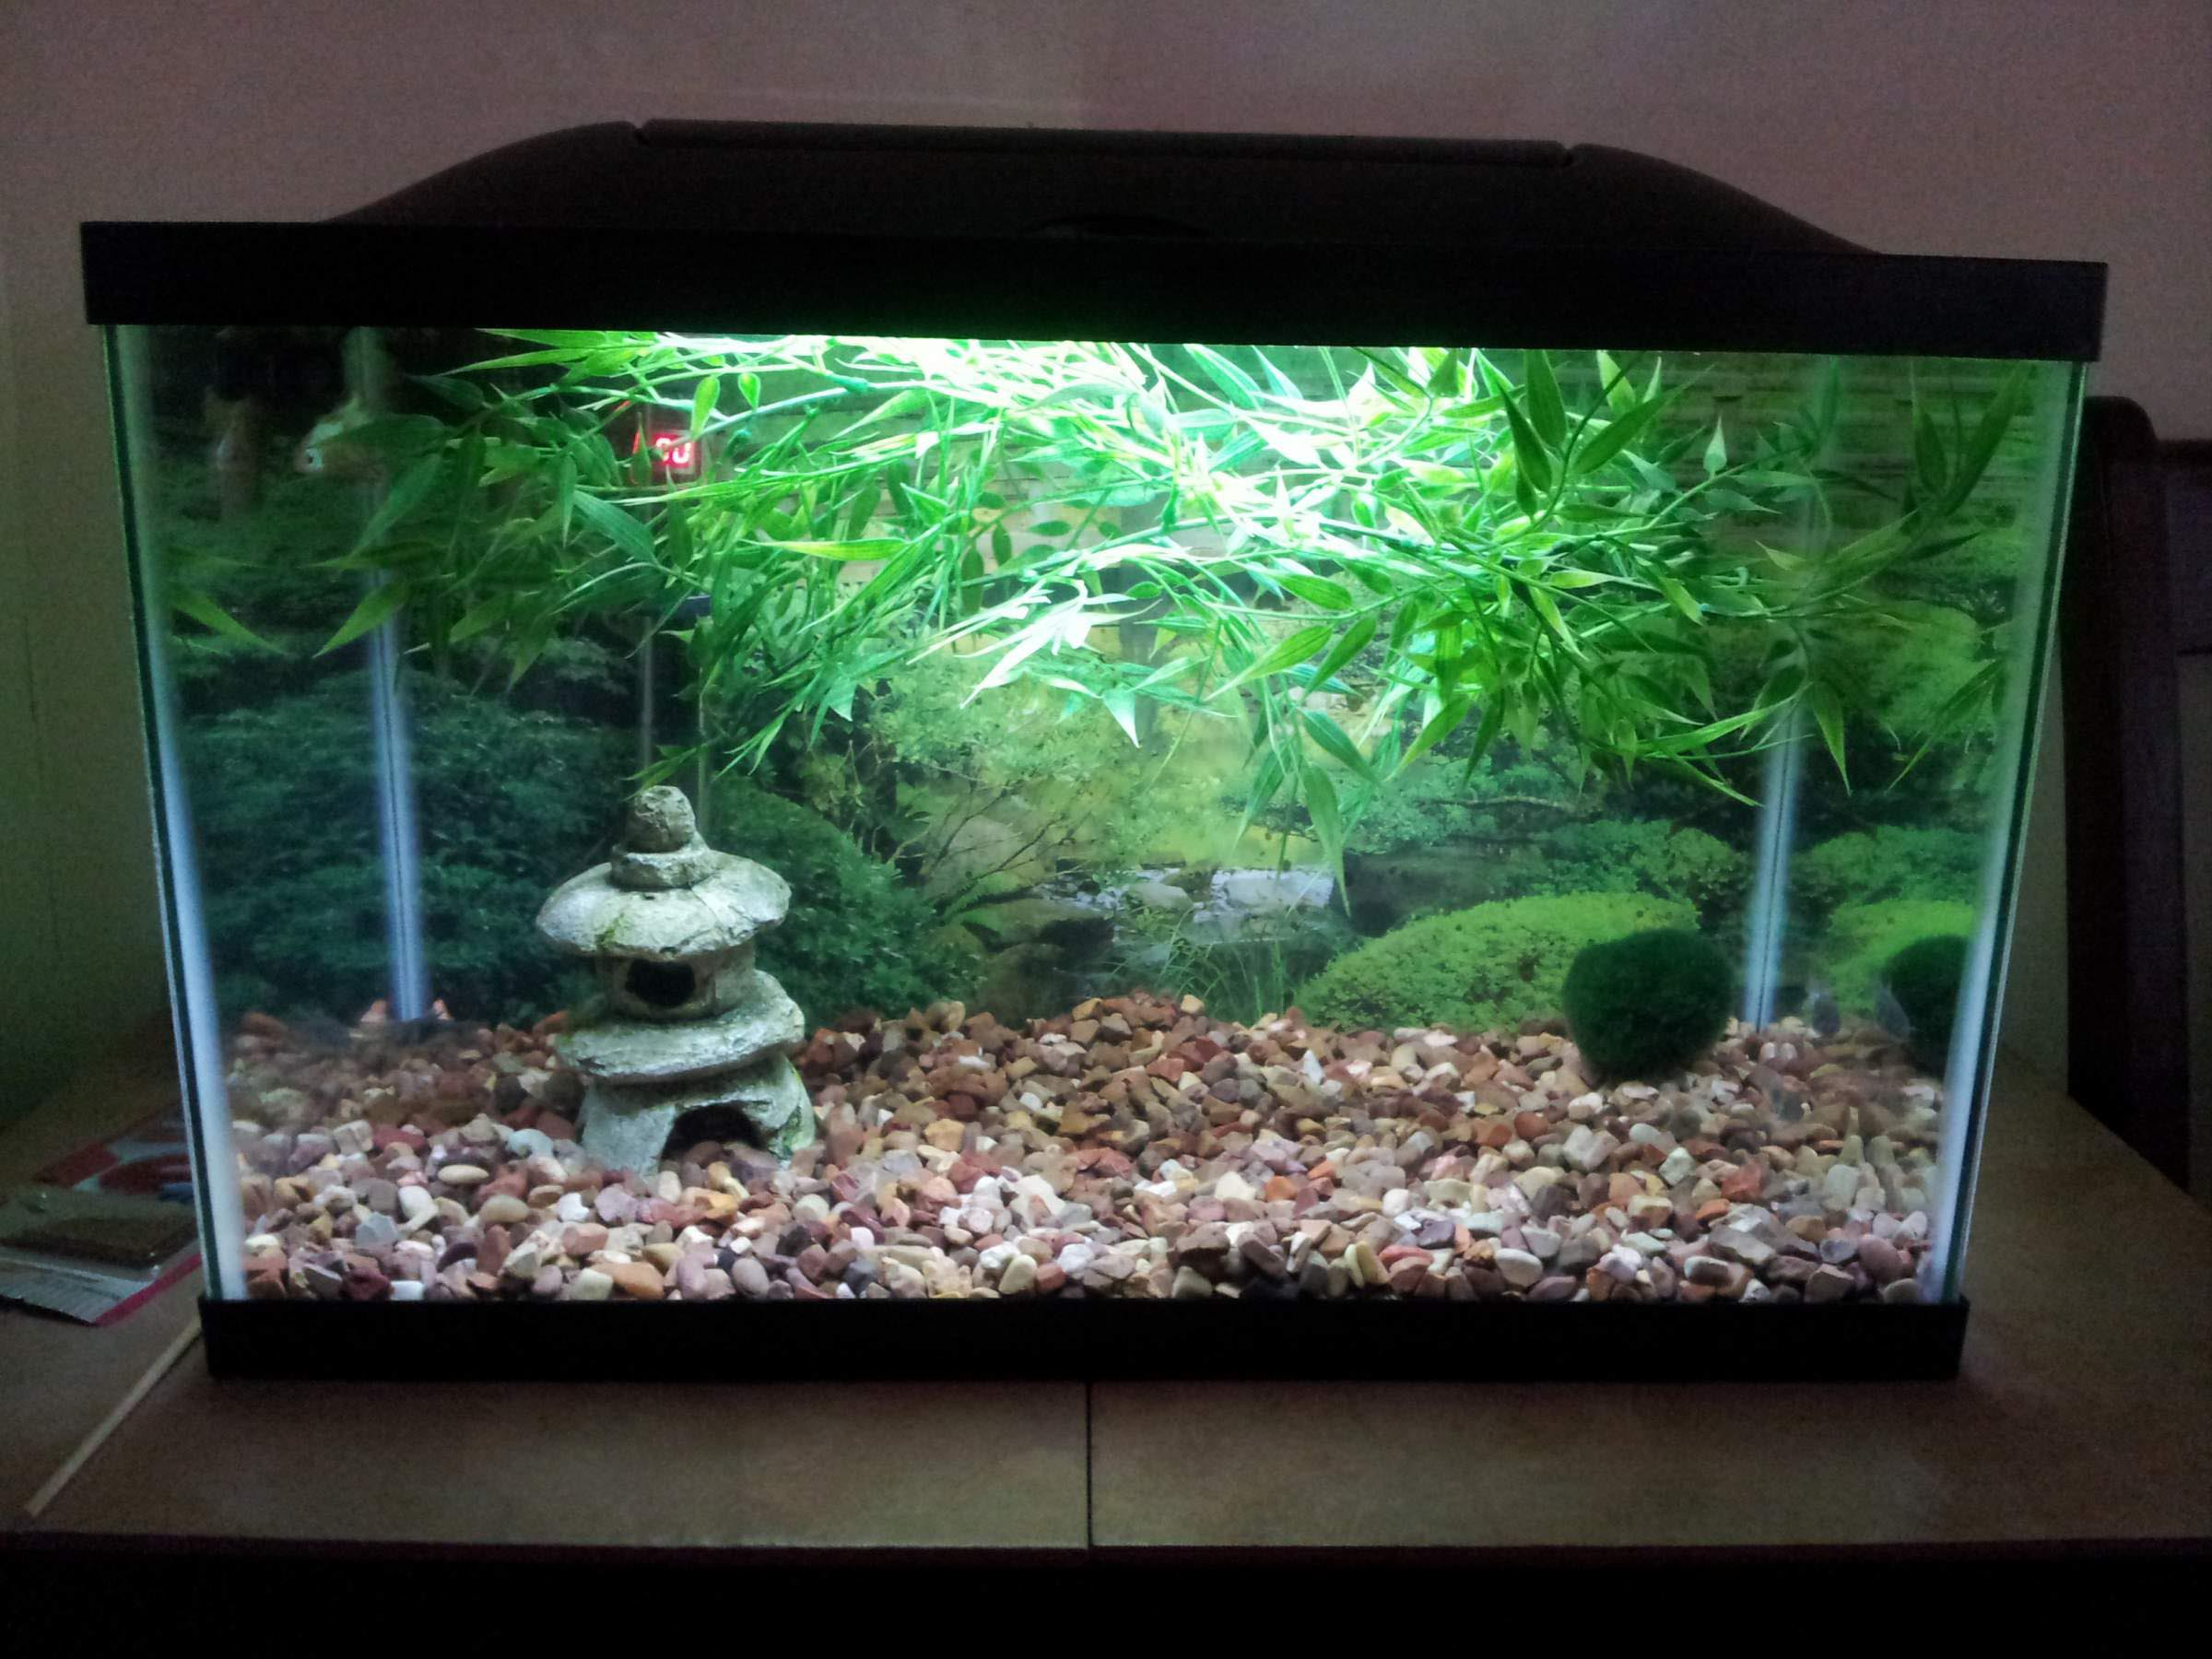 Asian fish aquarium decor aquarium design ideas for Aquarium design